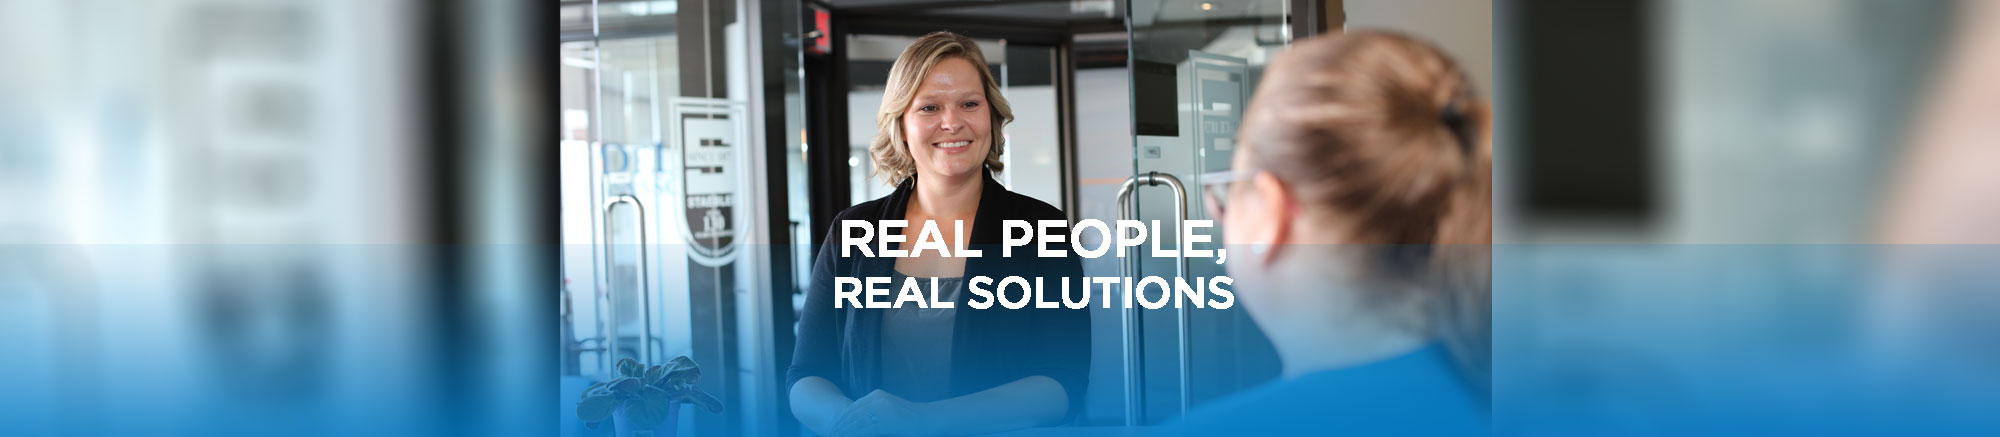 real people, real solutions